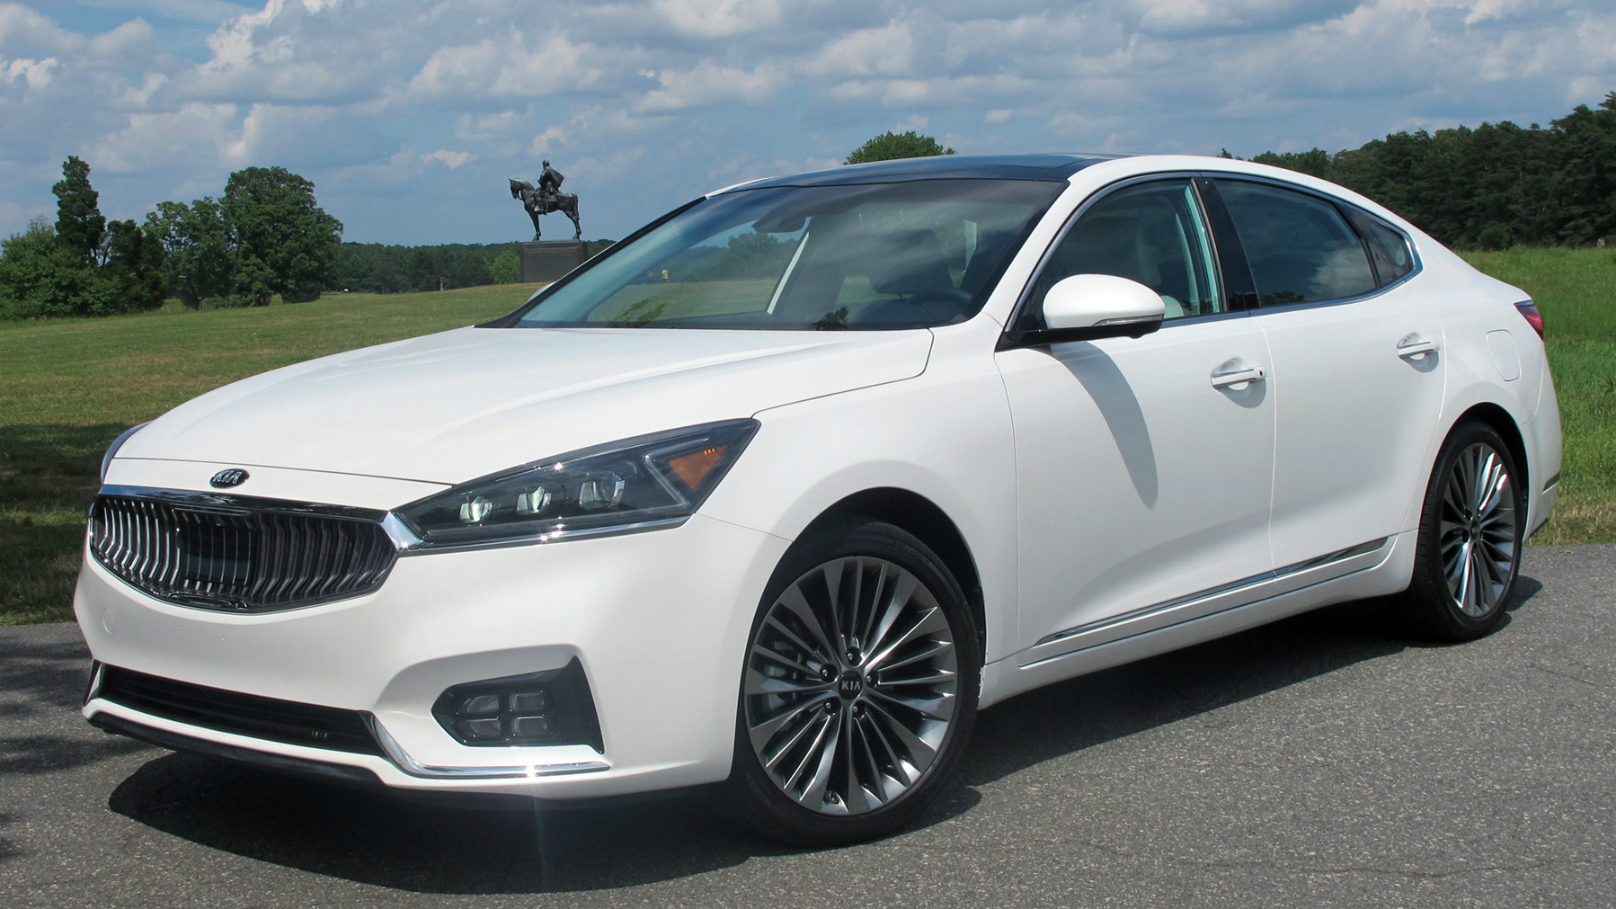 Kia Cadenza 2017 pricing